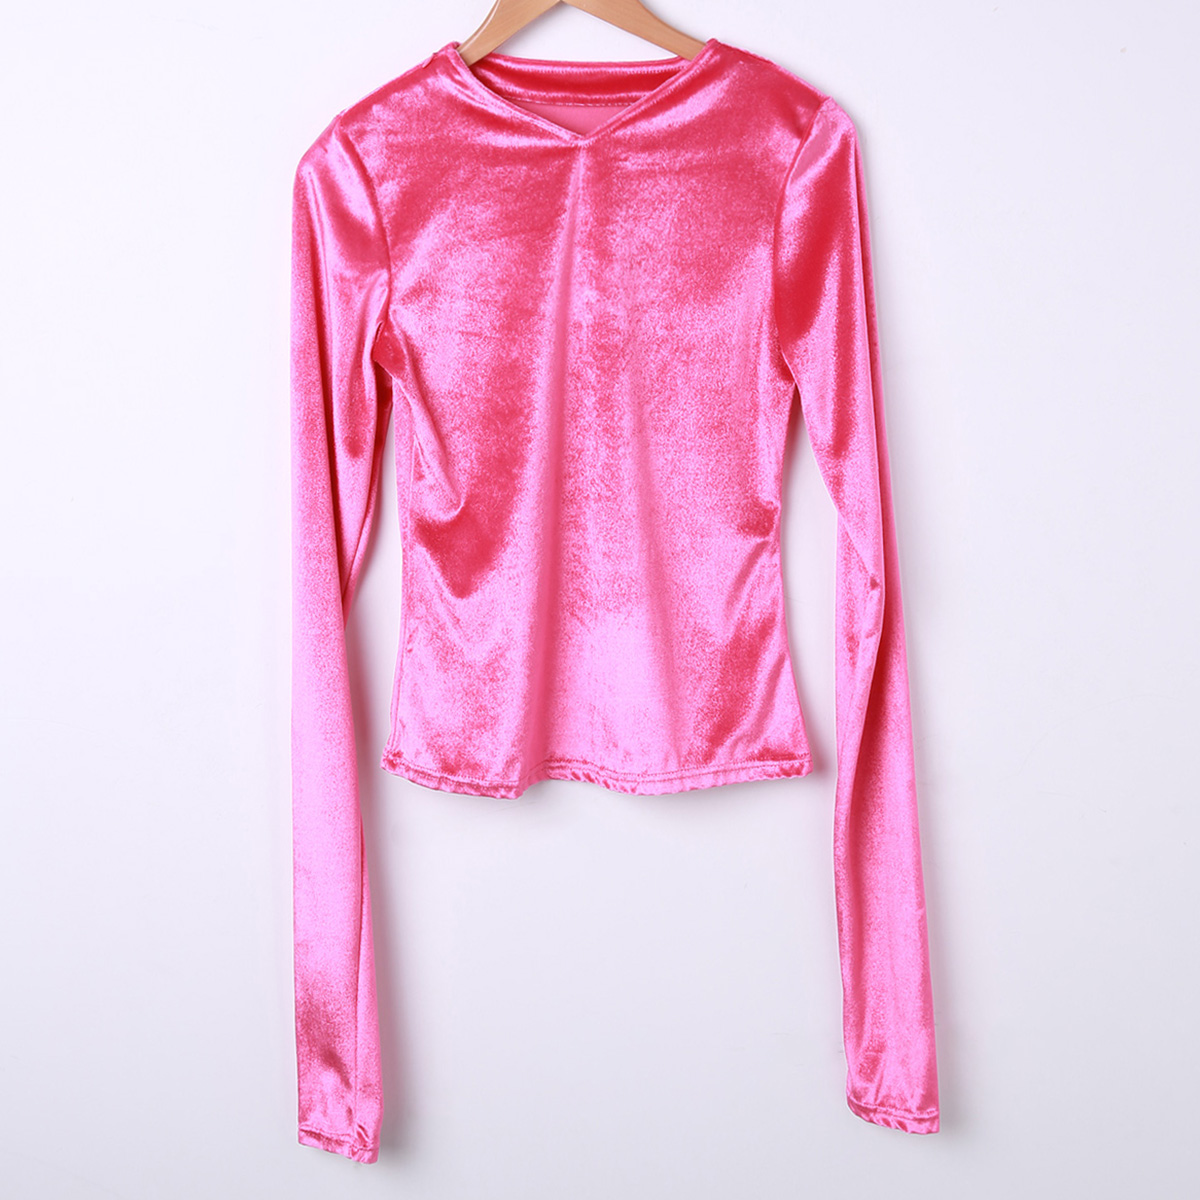 Fashion Women's Casual Velvet Long Sleeve Tops Slim Fit Casual T Shirt